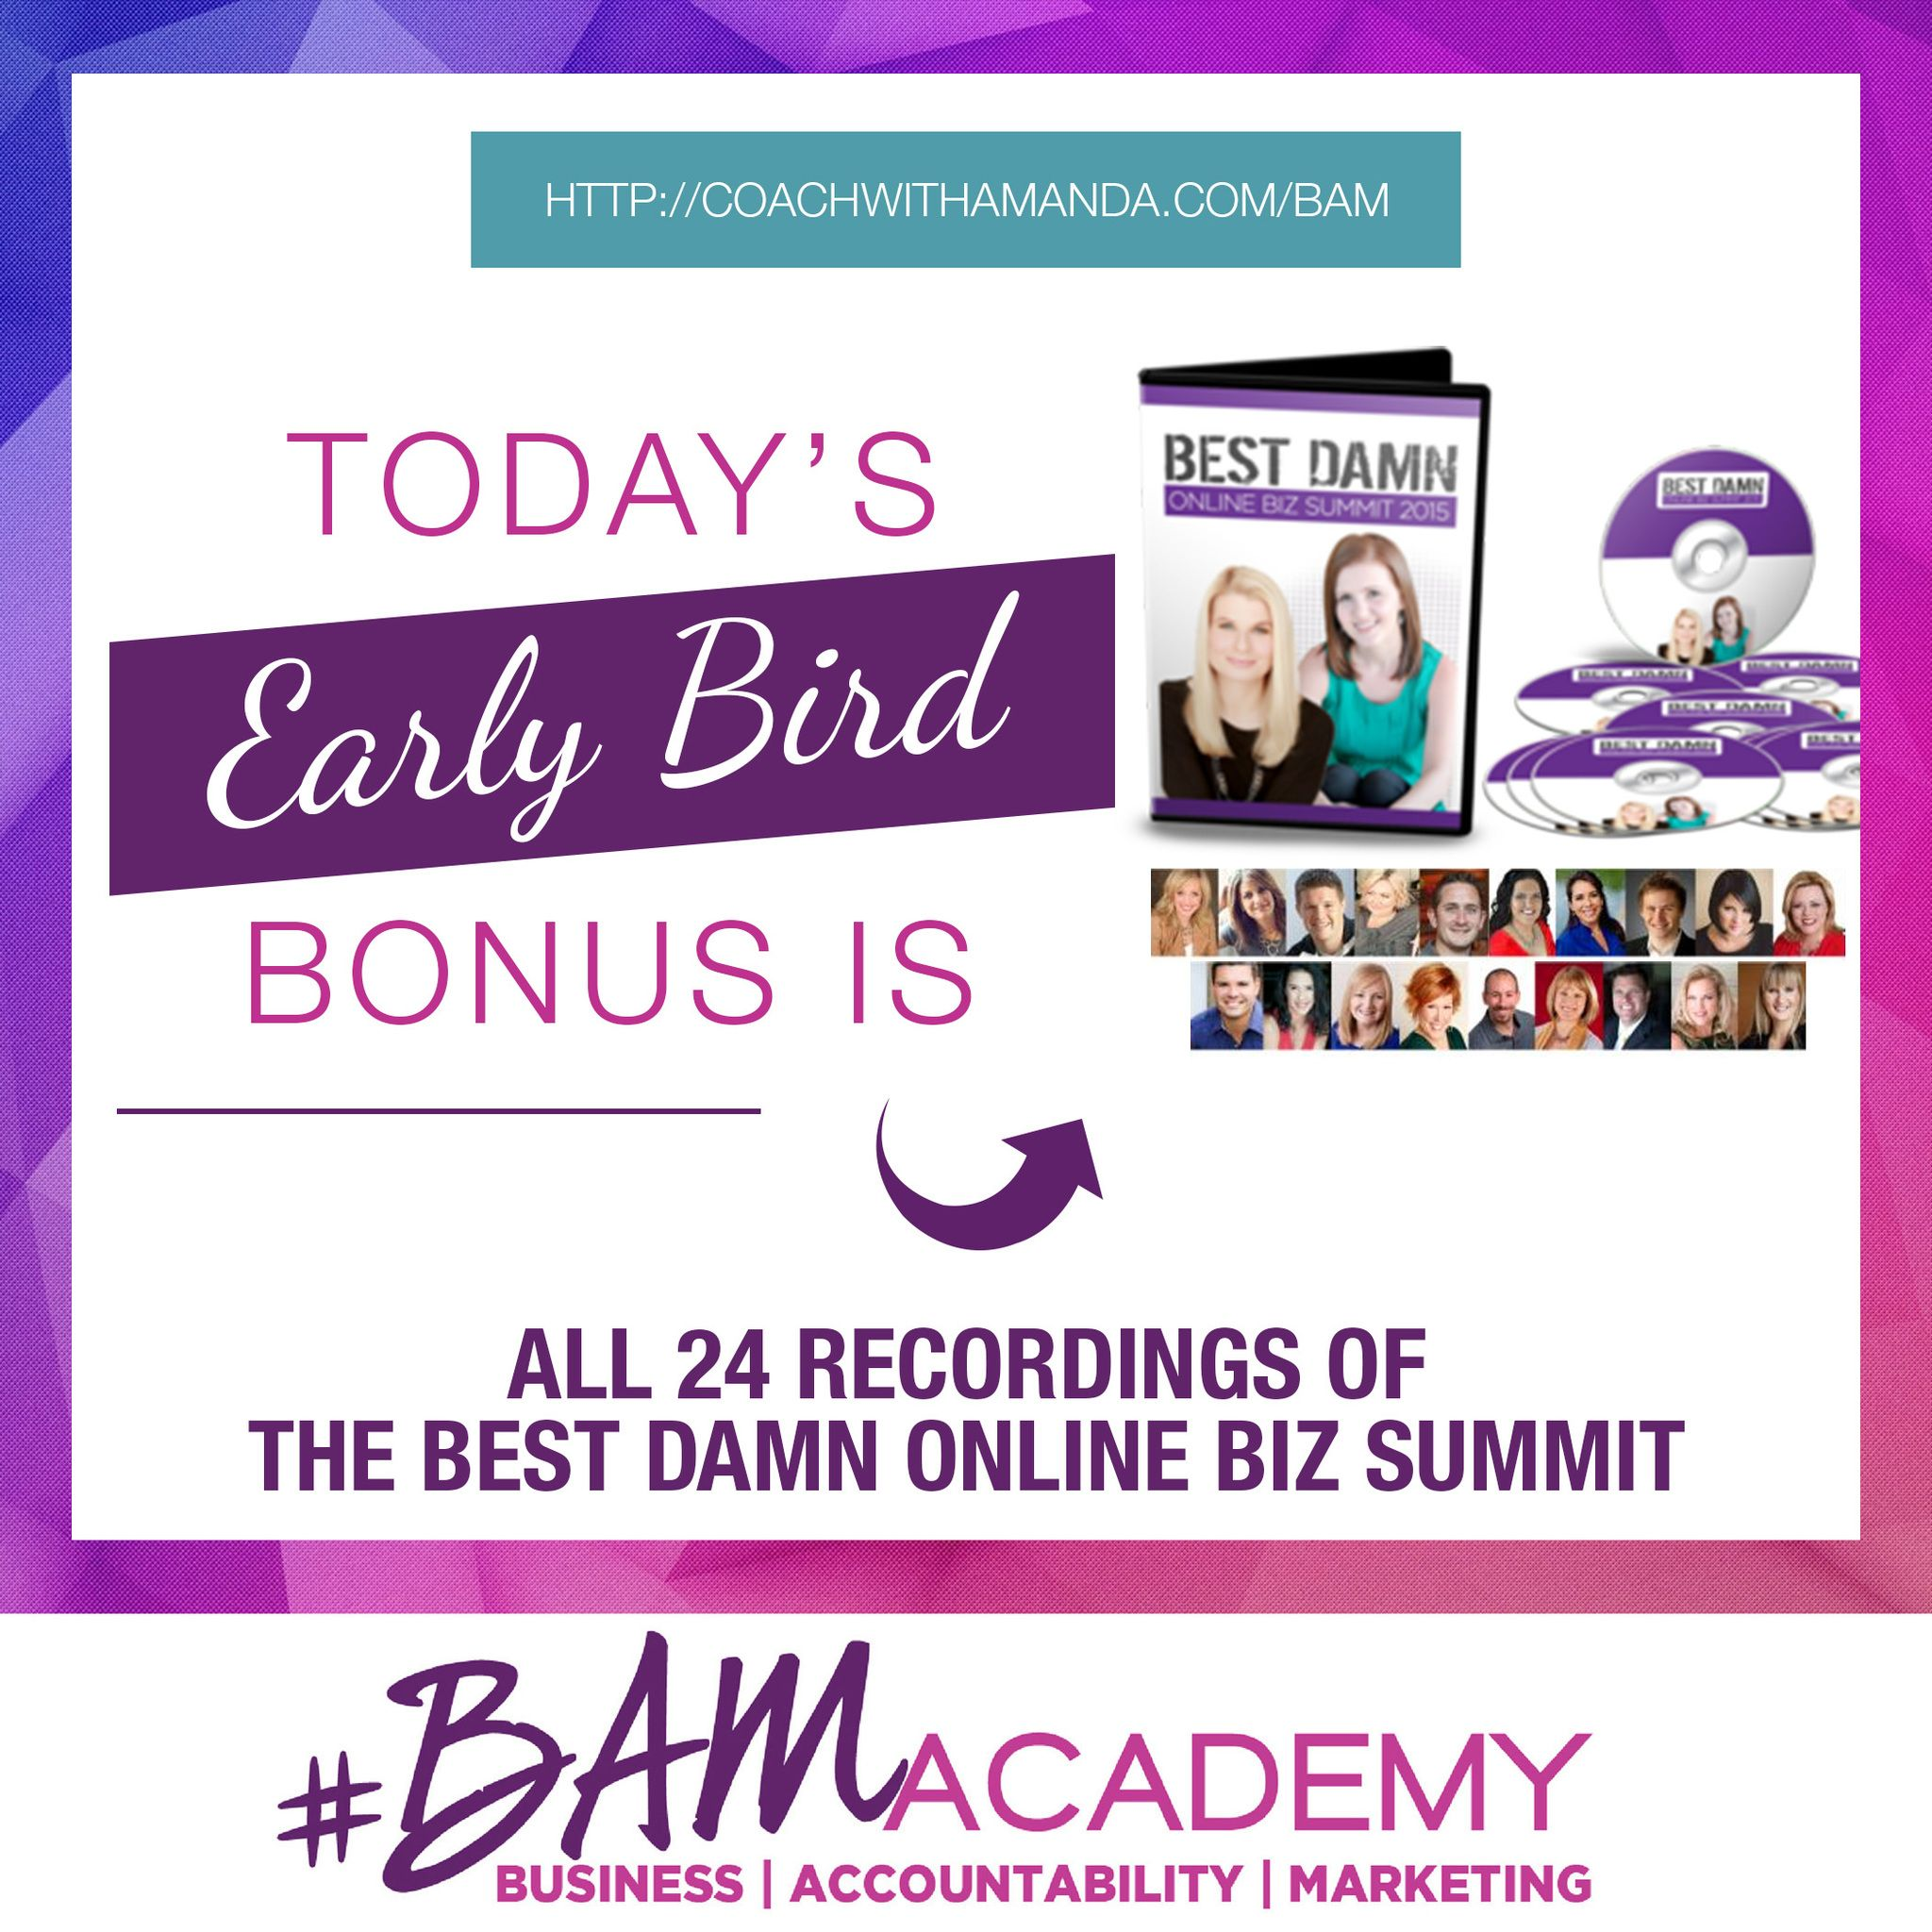 #BAM Academy DOORS ARE NOW OPEN! And Early Bird Bonuses are available for this week only! Sign up for #BAM Academy today and get access to All of the Recordings from The Best Damn Online Biz Summit, PLUS 3 Other Bonuses. The earlier you sign up, the more bonuses you get. After today, this bonus is GONE! JOIN HERE >> http://coachwithamanda.com/bam?utm_content=bufferade43&utm_medium=social&utm_source=pinterest.com&utm_campaign=buffer   #coaching #femaleentrepreneur #womeninbusiness…